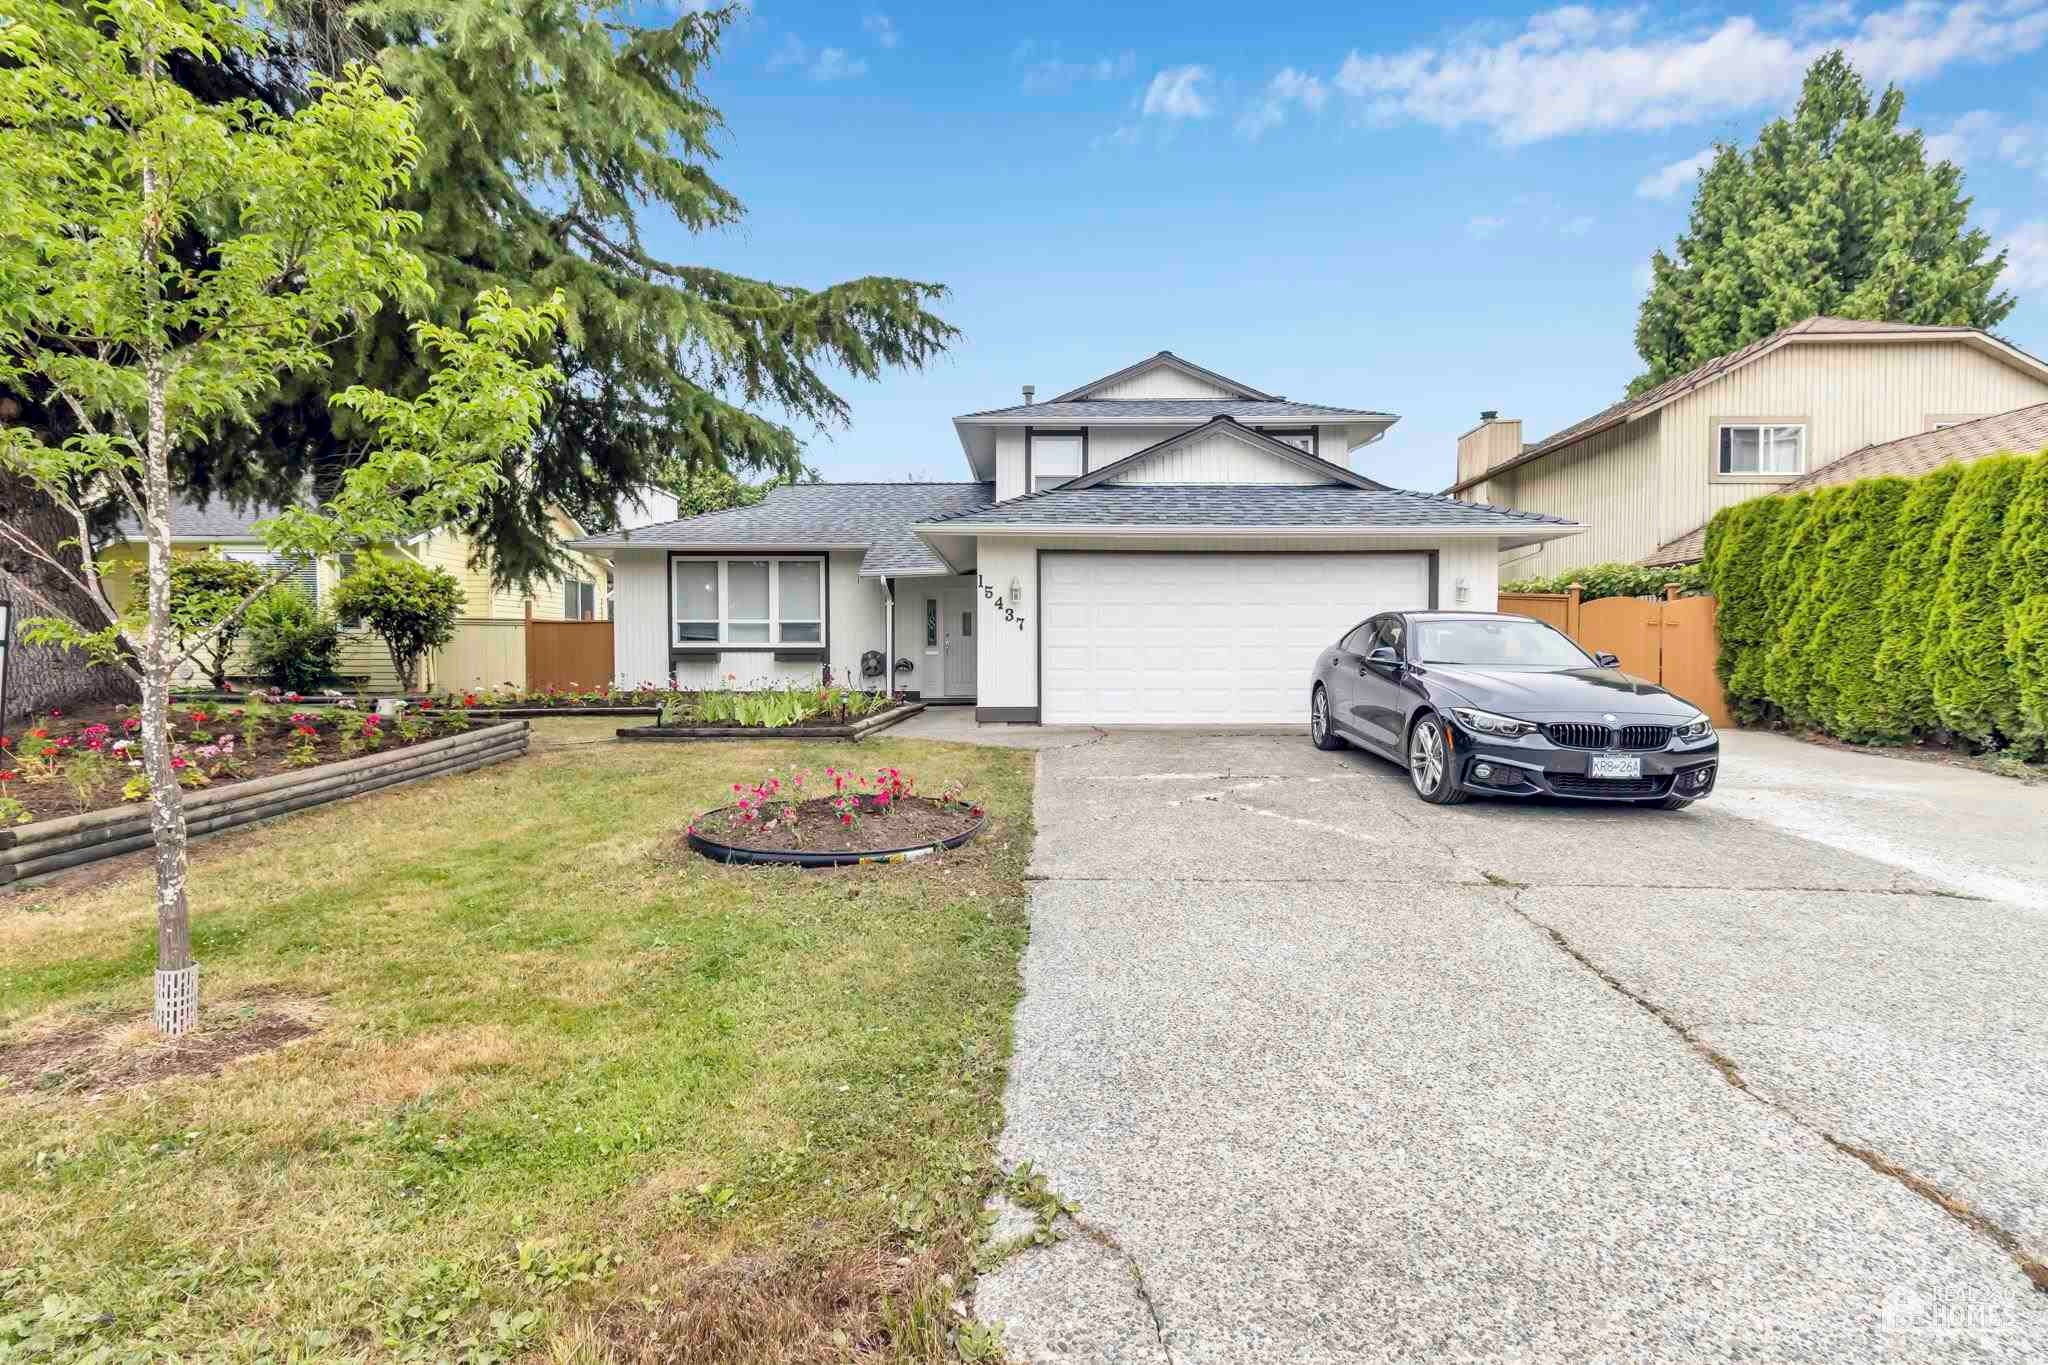 15437 96A AVENUE - Guildford House/Single Family for sale, 5 Bedrooms (R2603840)